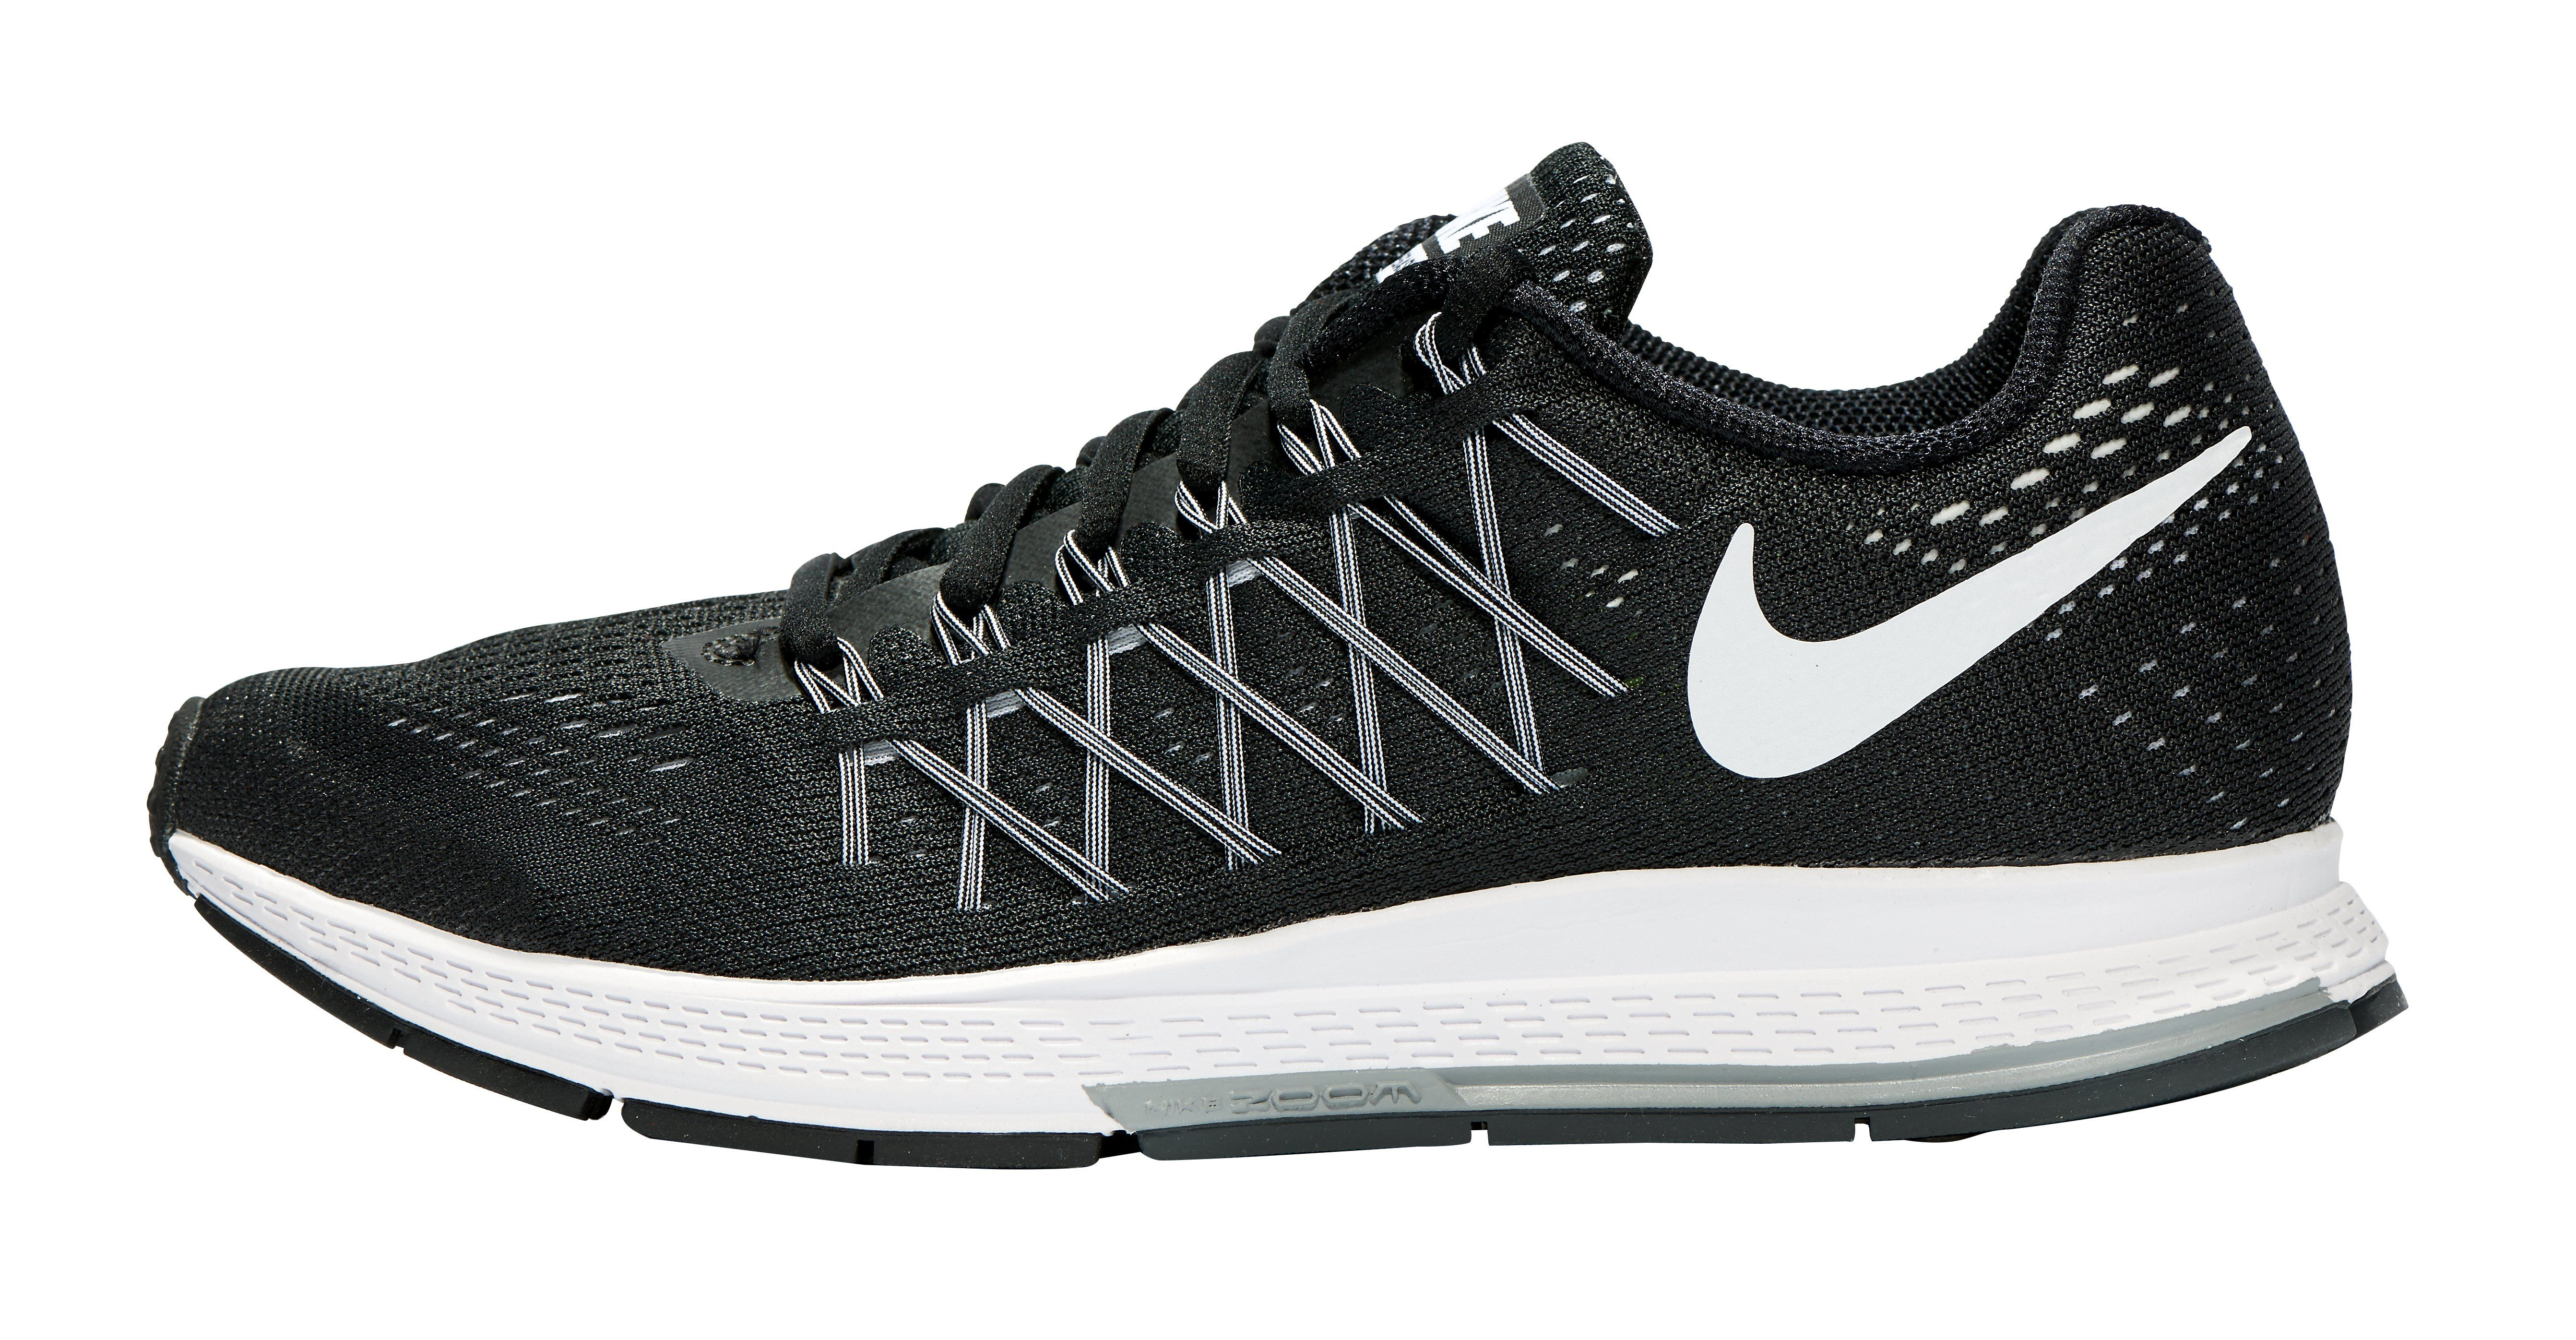 Nike Air Zoom Pegasus 32 Womens Running Shoe | Modell's